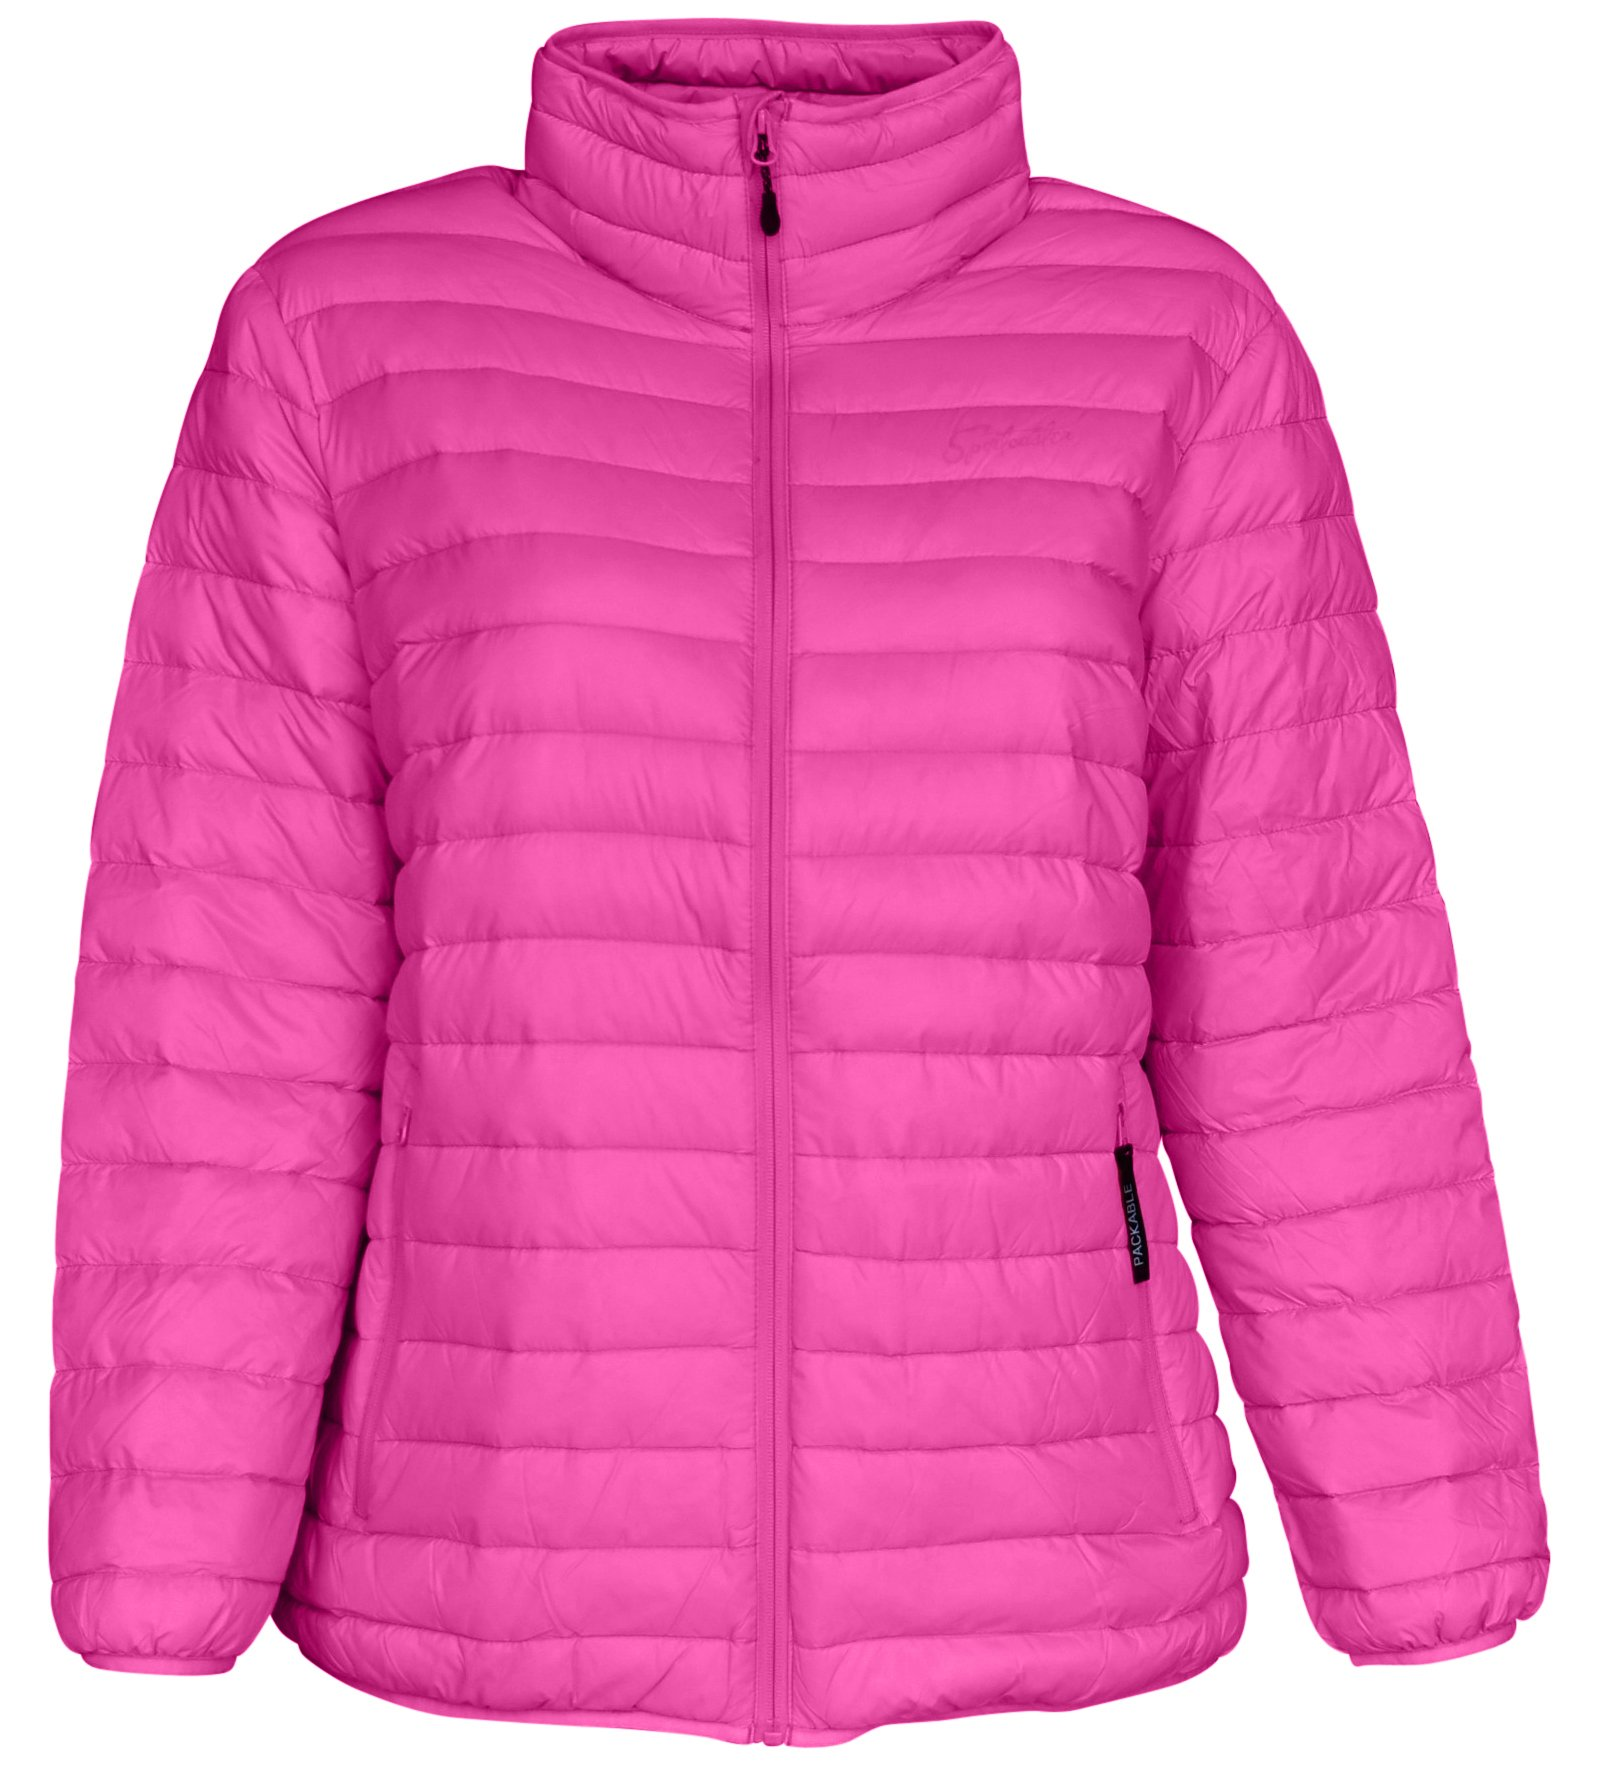 Sportcaster Women's Plus Size Packable Down Jacket (3X, Bubble Gum Pink)